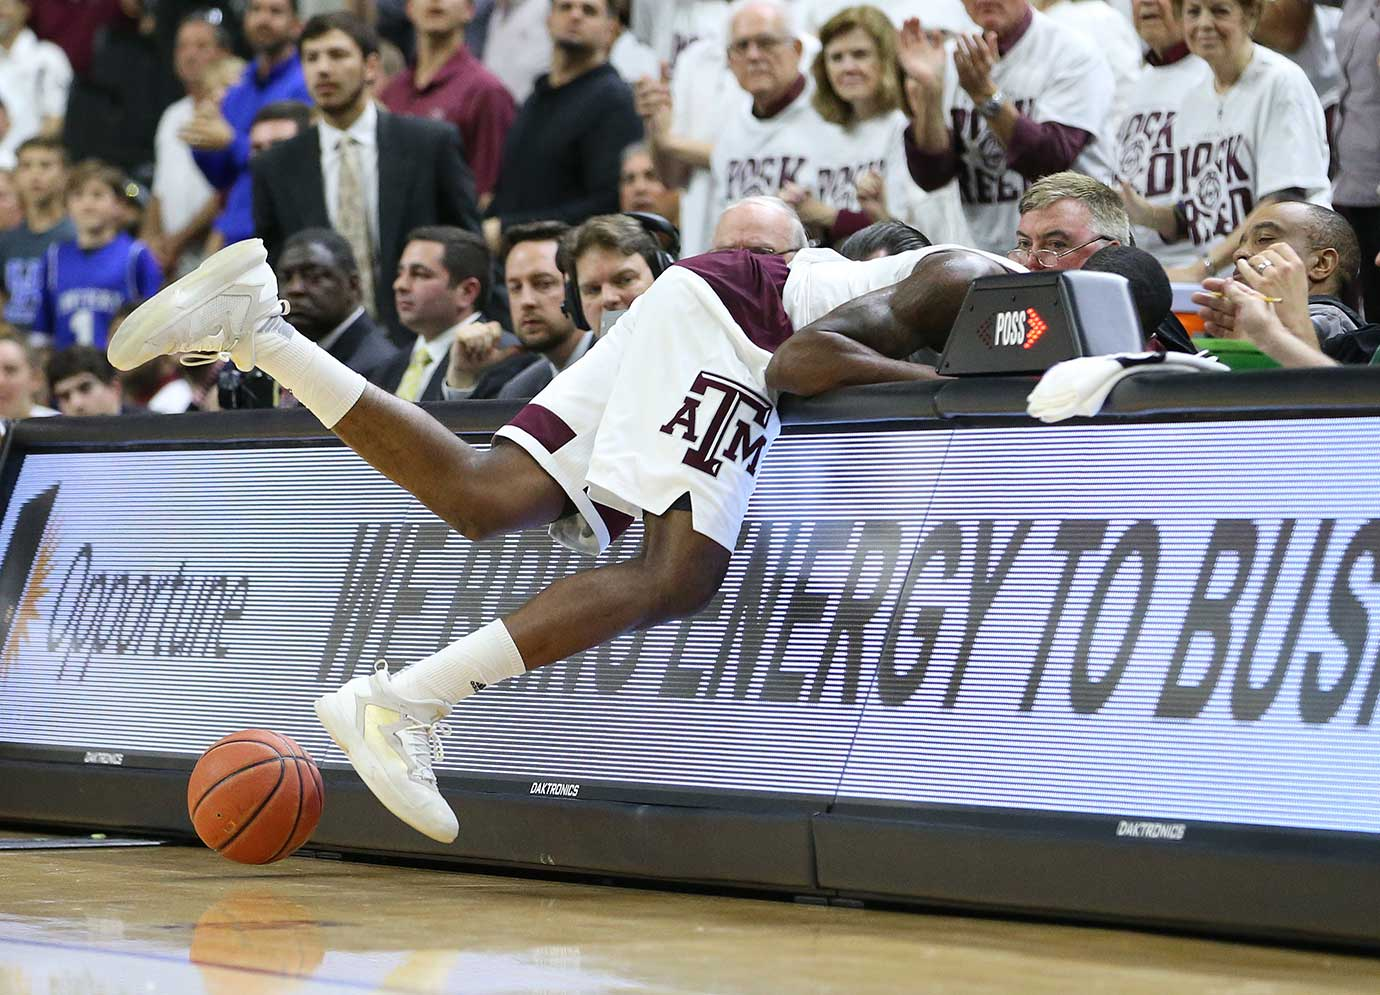 Texas A&M's Jalen Jones dives into the scorer's table while chasing a loose ball against Kentucky.